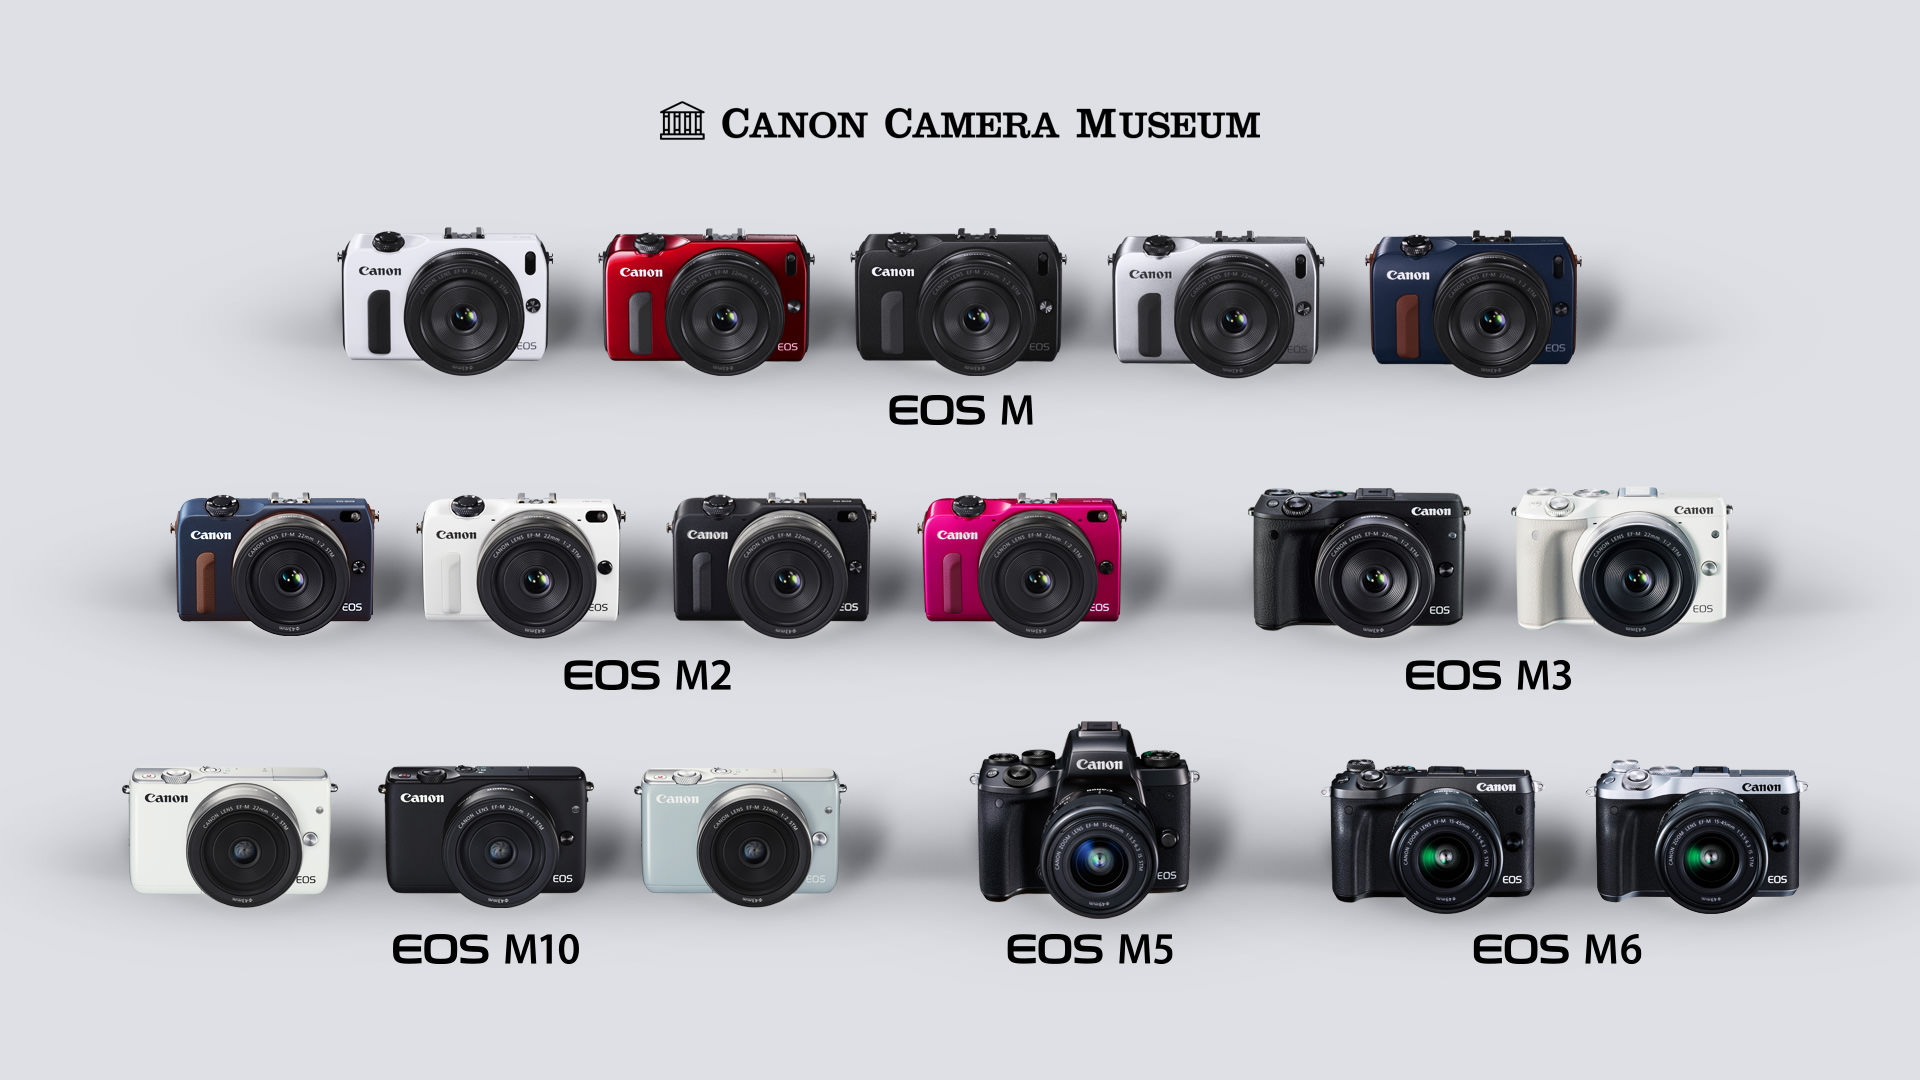 The EOS M Line Combines Portability And Performance To Give You Stunning Image Results With Its APS C Size CMOS Sensor